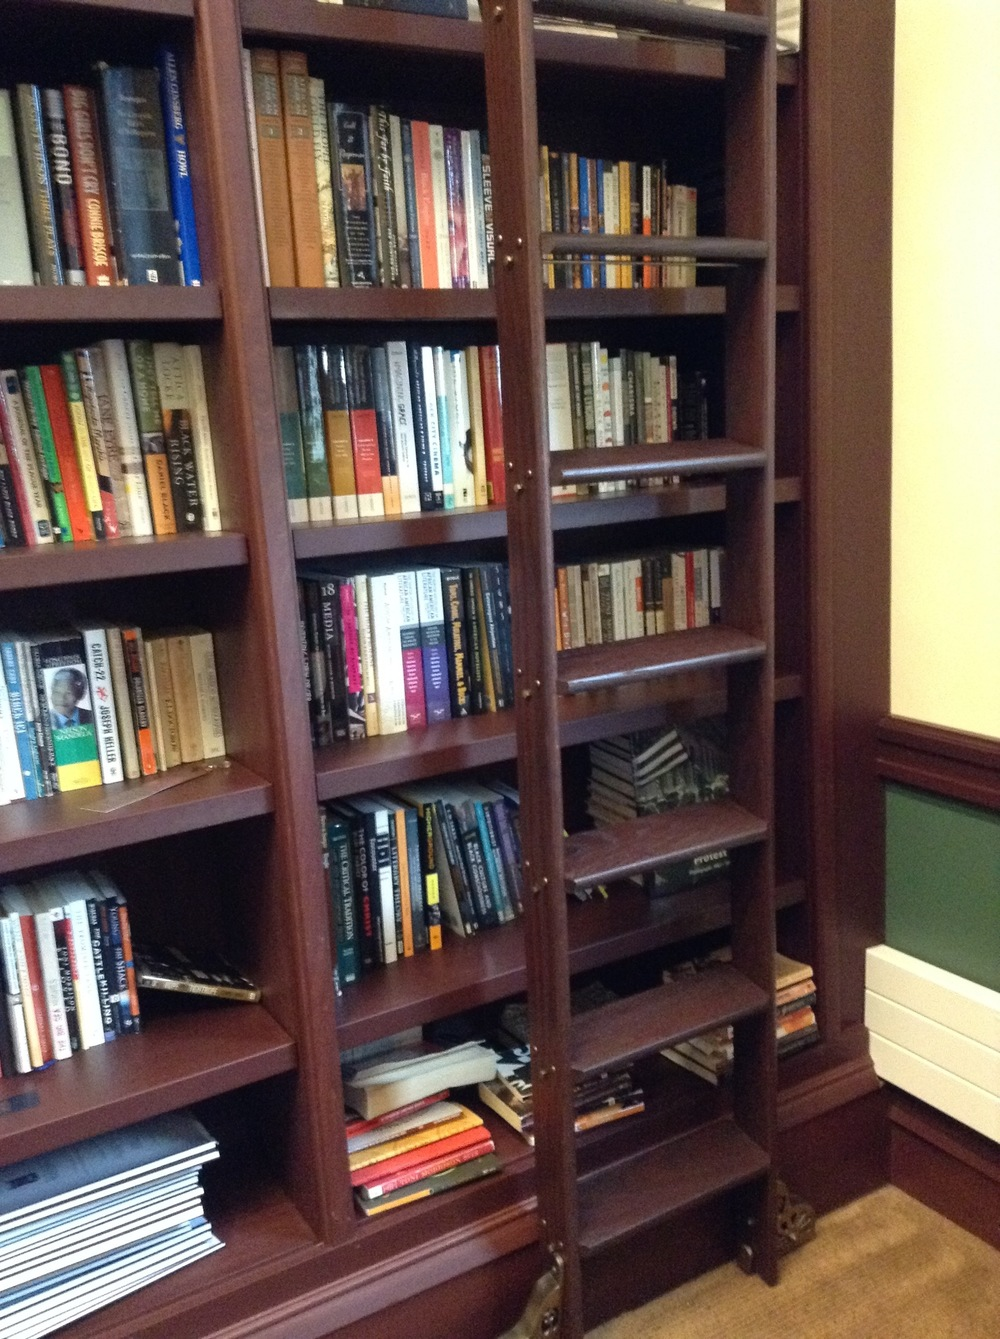 If you are a very good professor, you get a floor-to-ceiling bookshelf with a ladder in your office. Just kidding.